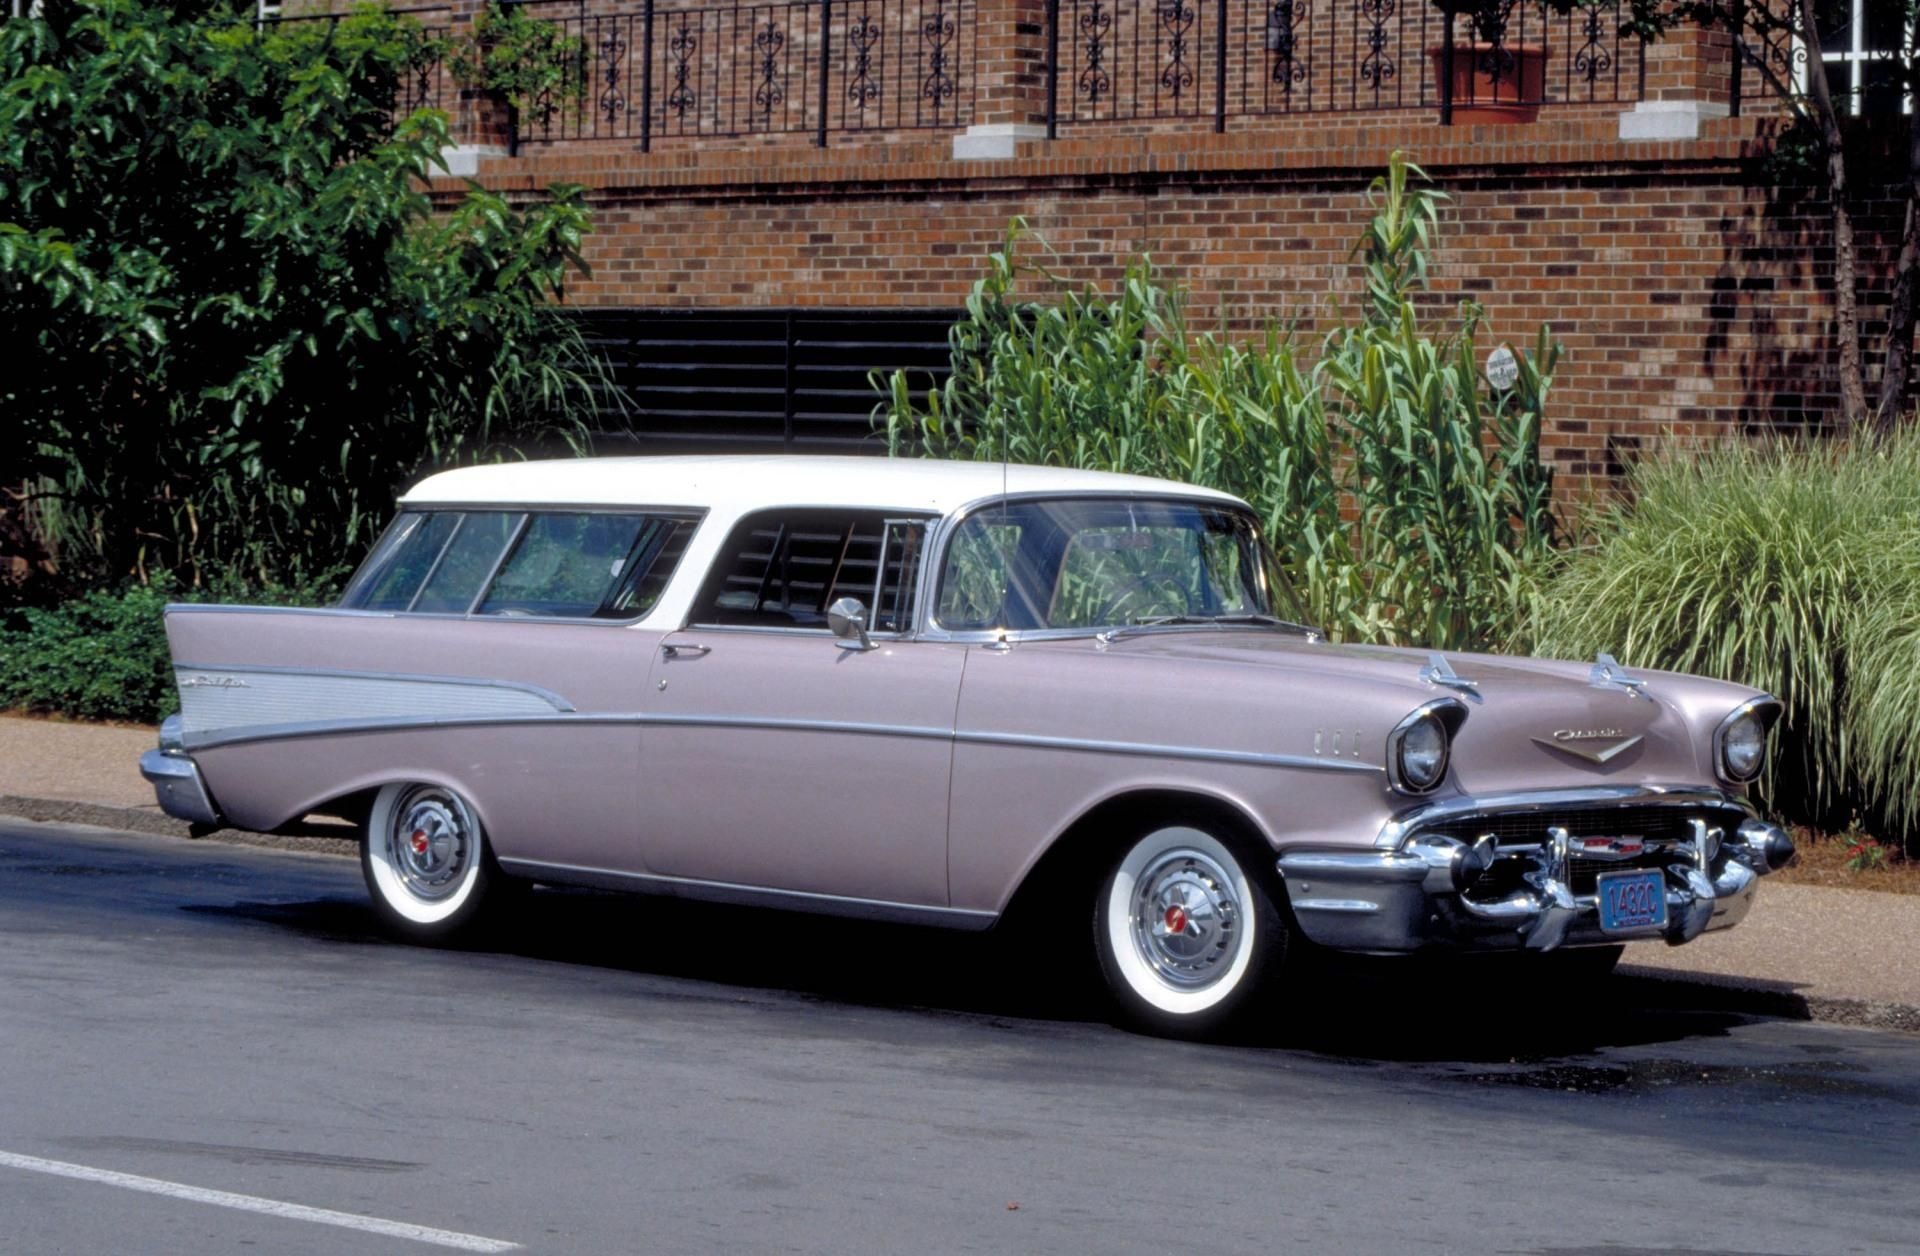 1957 chevrolet bel air nomad in a soft lilac color i remember many trips to the ocean with our surfboards hanging out the back first car of mike de falco